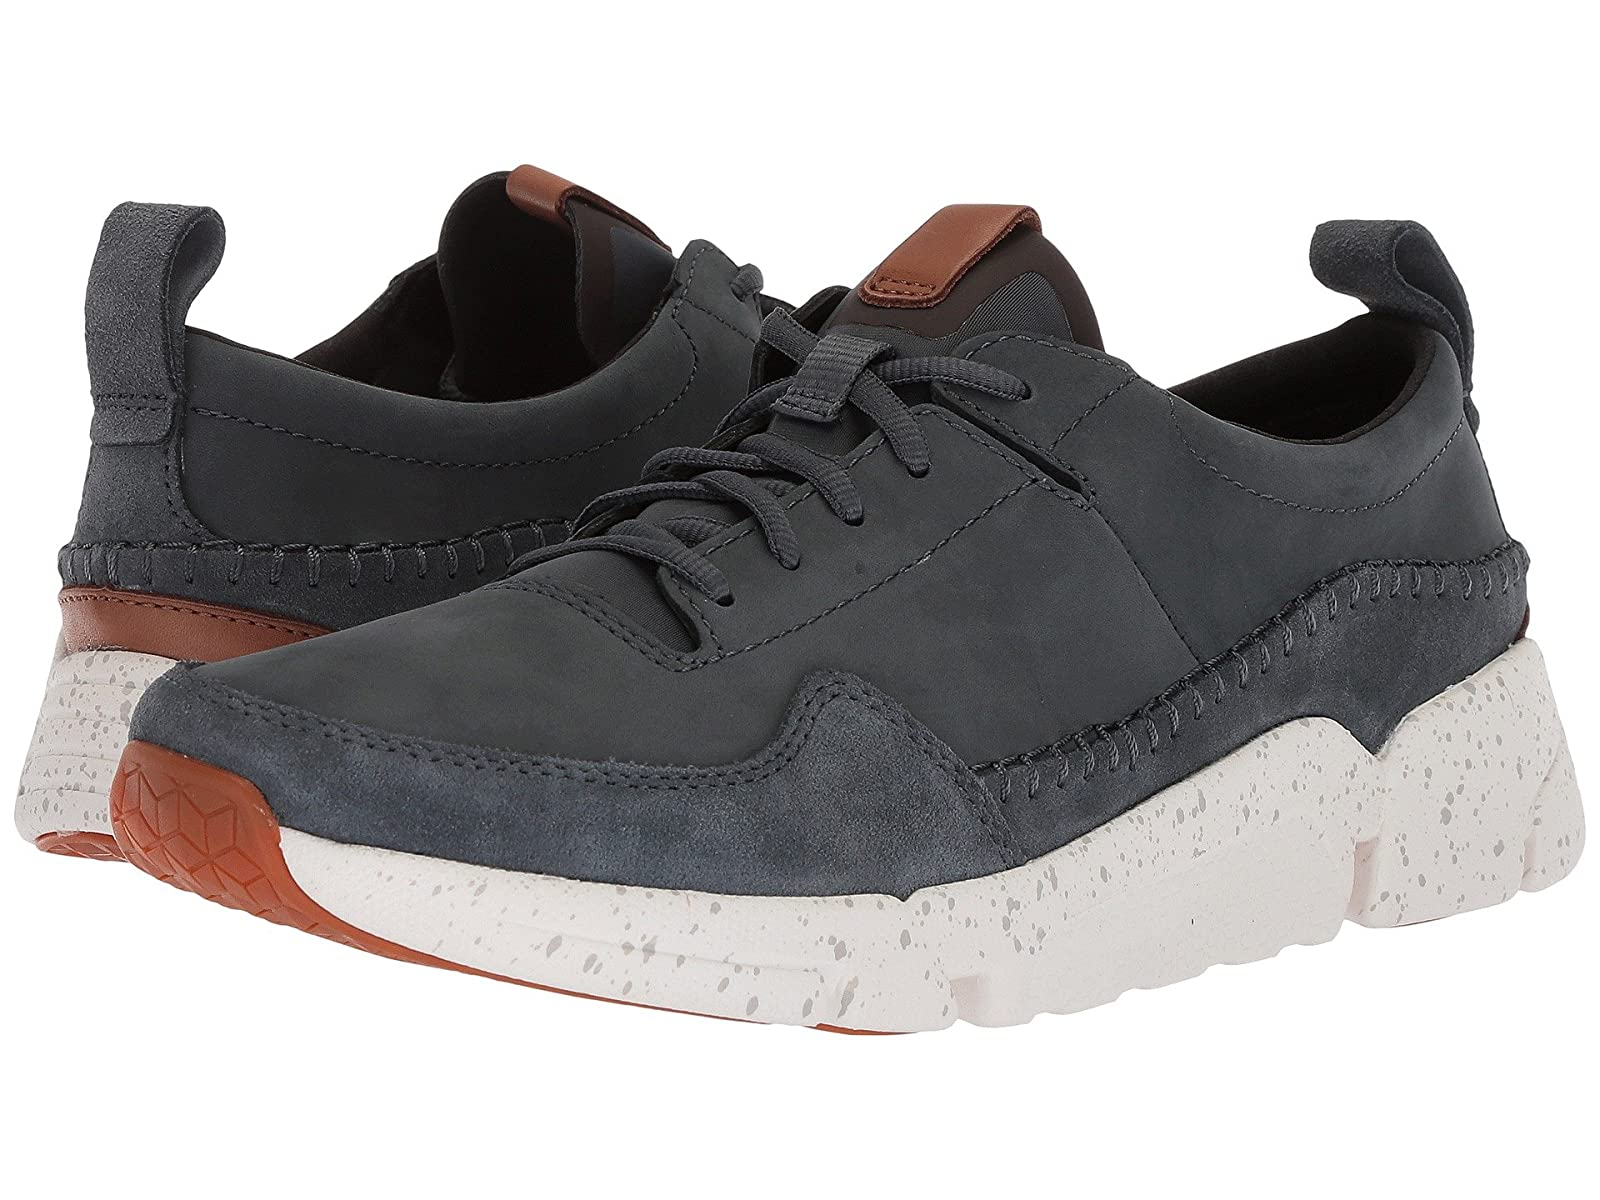 Clarks TriActive RunCheap and distinctive eye-catching shoes